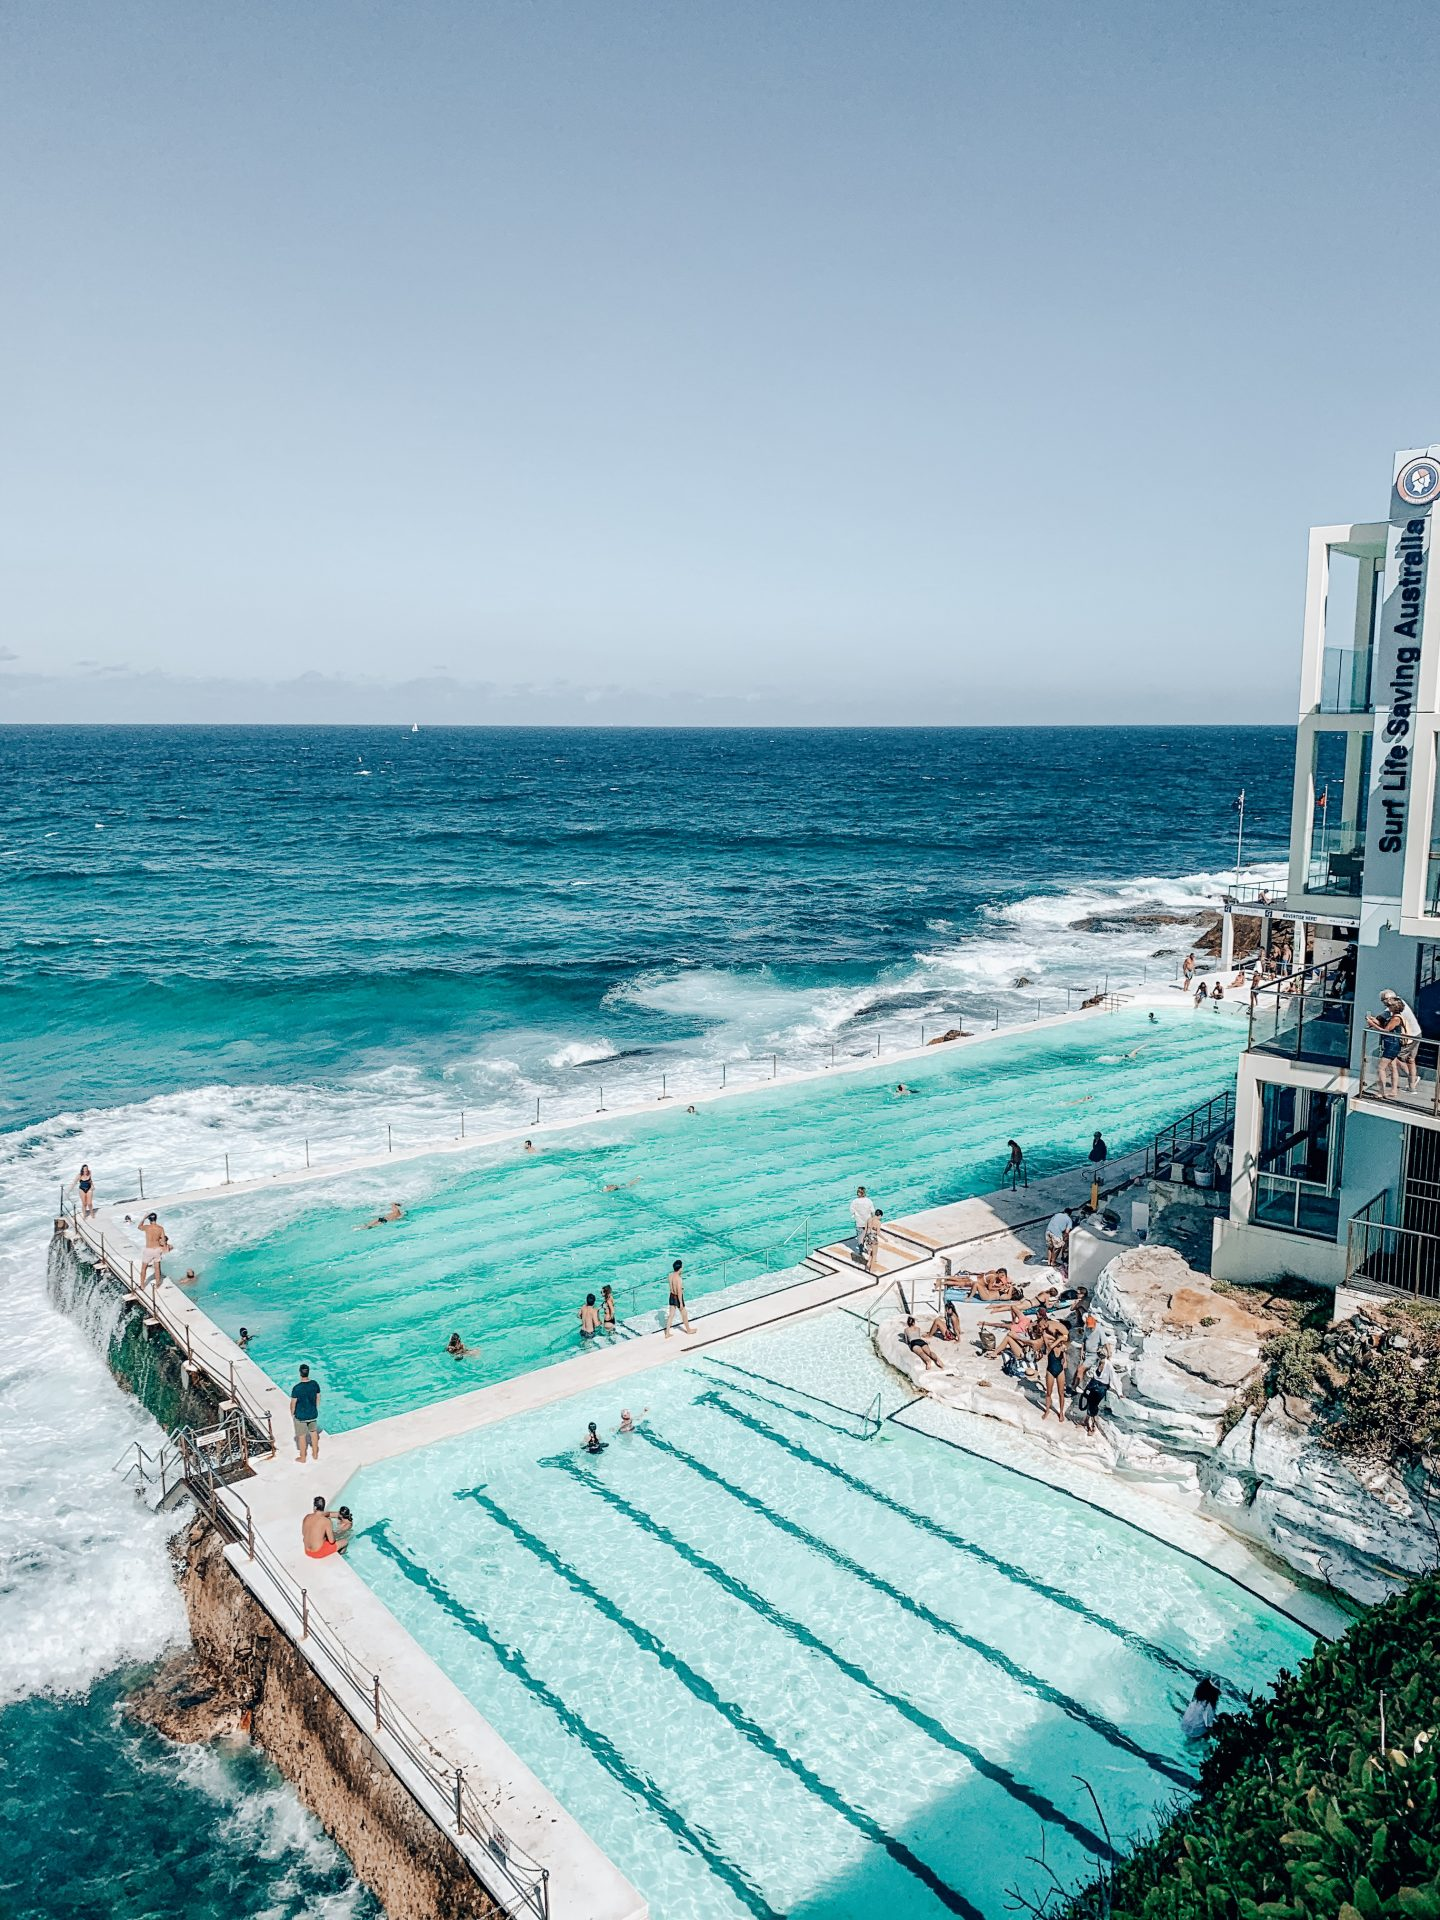 View of Bondi Beach's famous Iceberg Pools on a beautiful, sunny day!